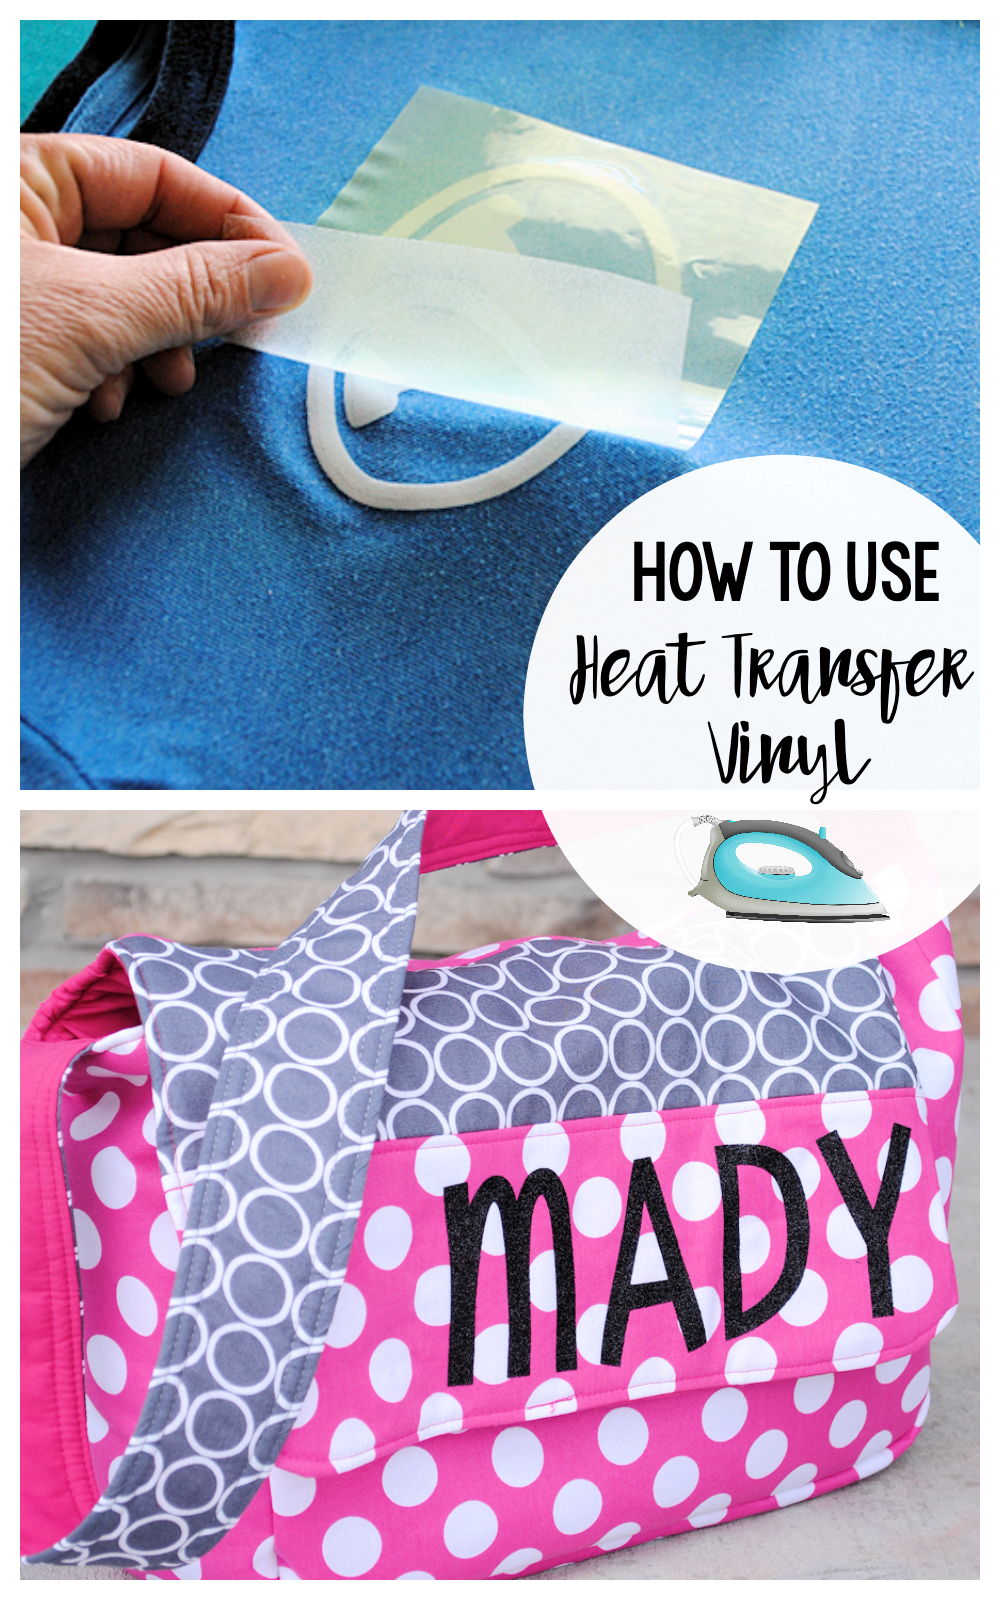 A Step by Step Guide of How to Use Heat Transfer Vinyl-Add it to your projects to personalize and customize them! #howto #vinyl #heattransfervinyl #crafts